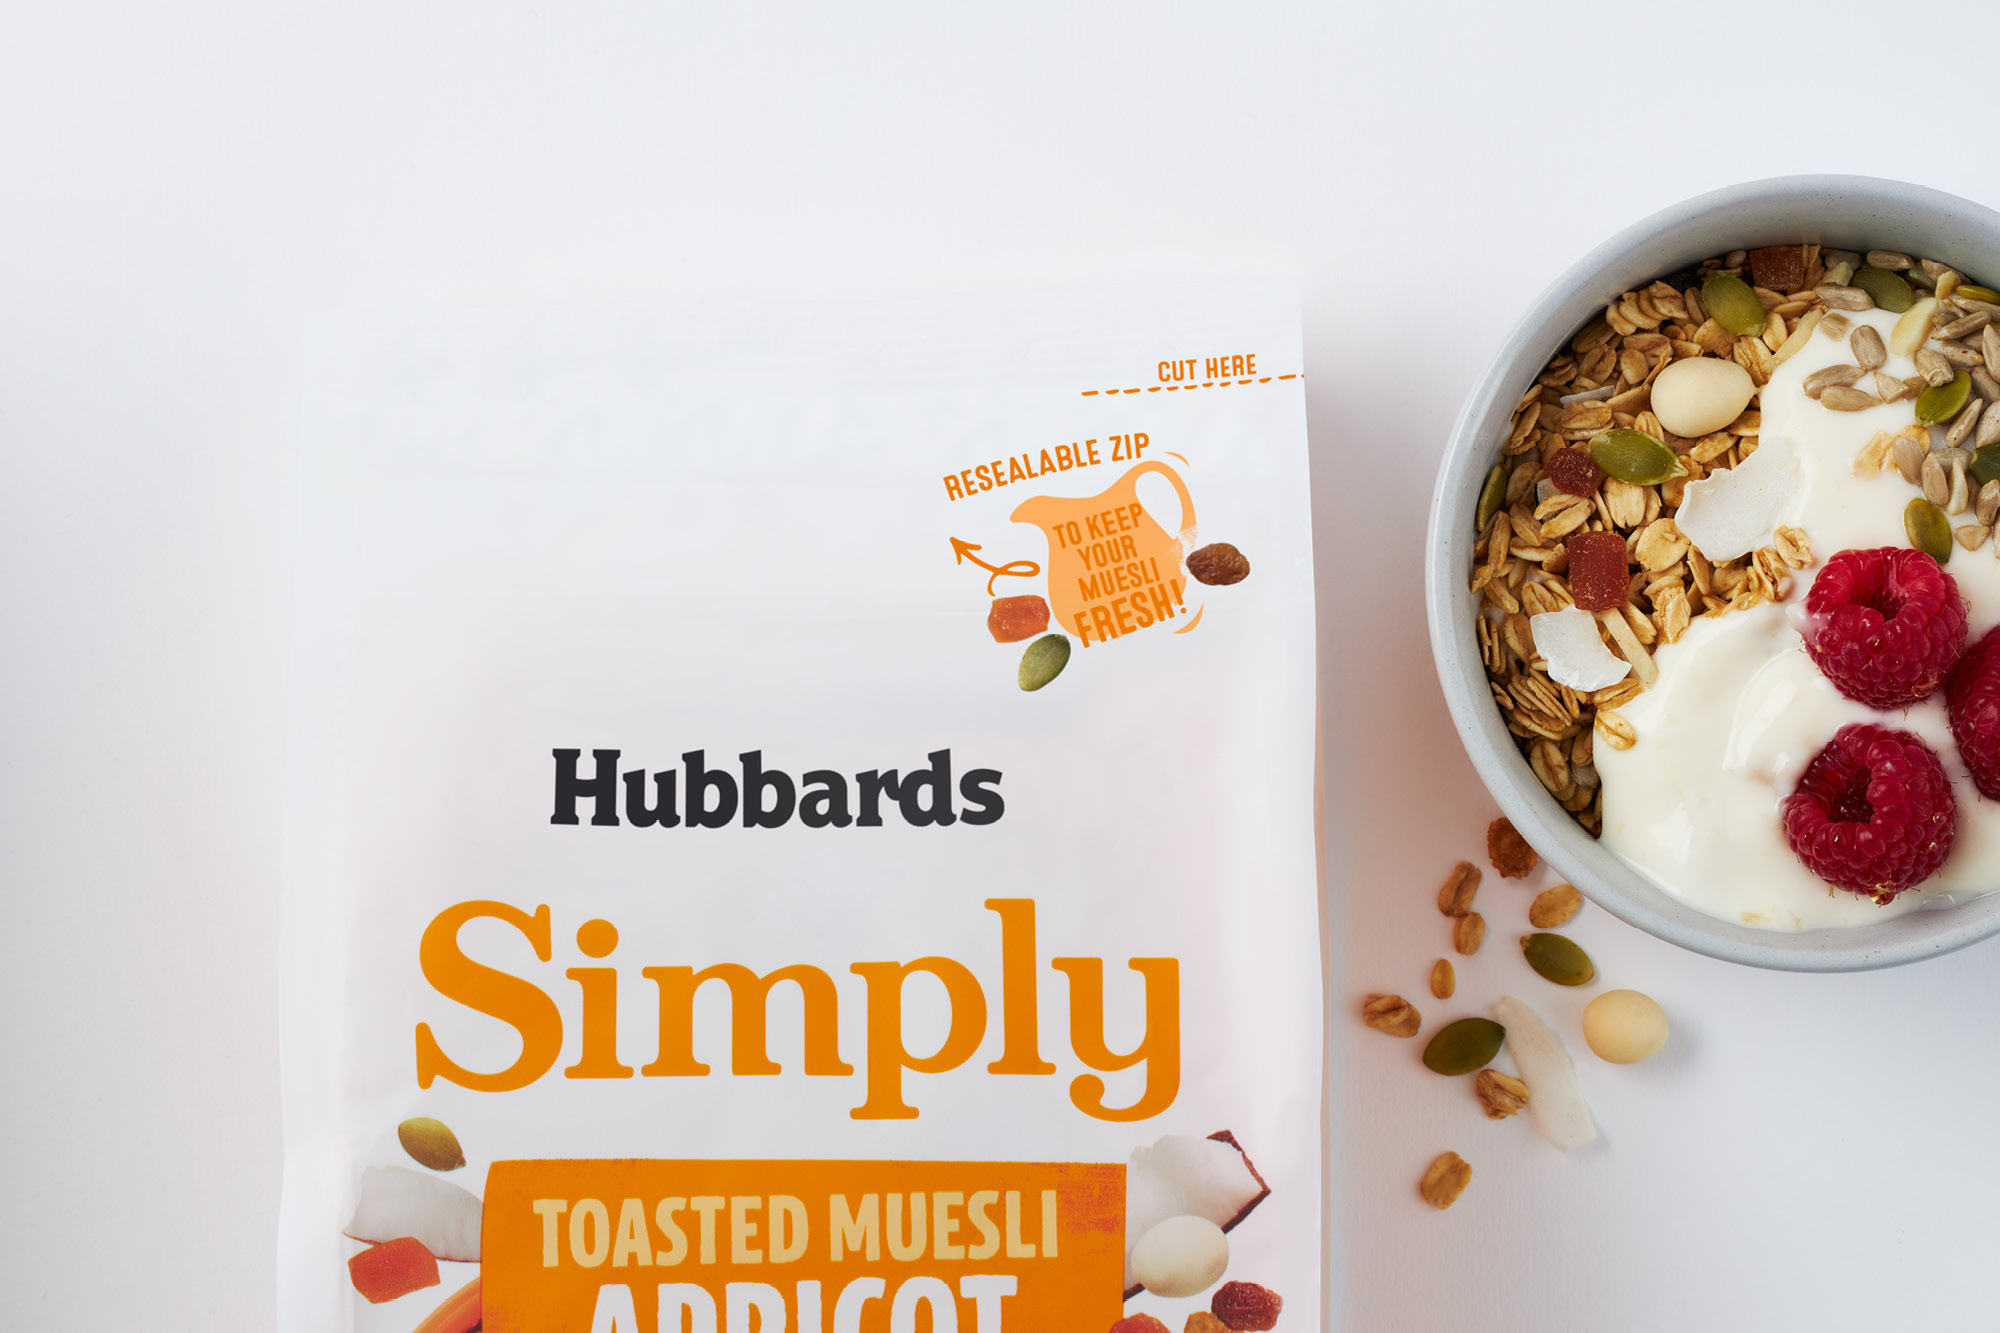 onfire design hubbards simply packaging design 3